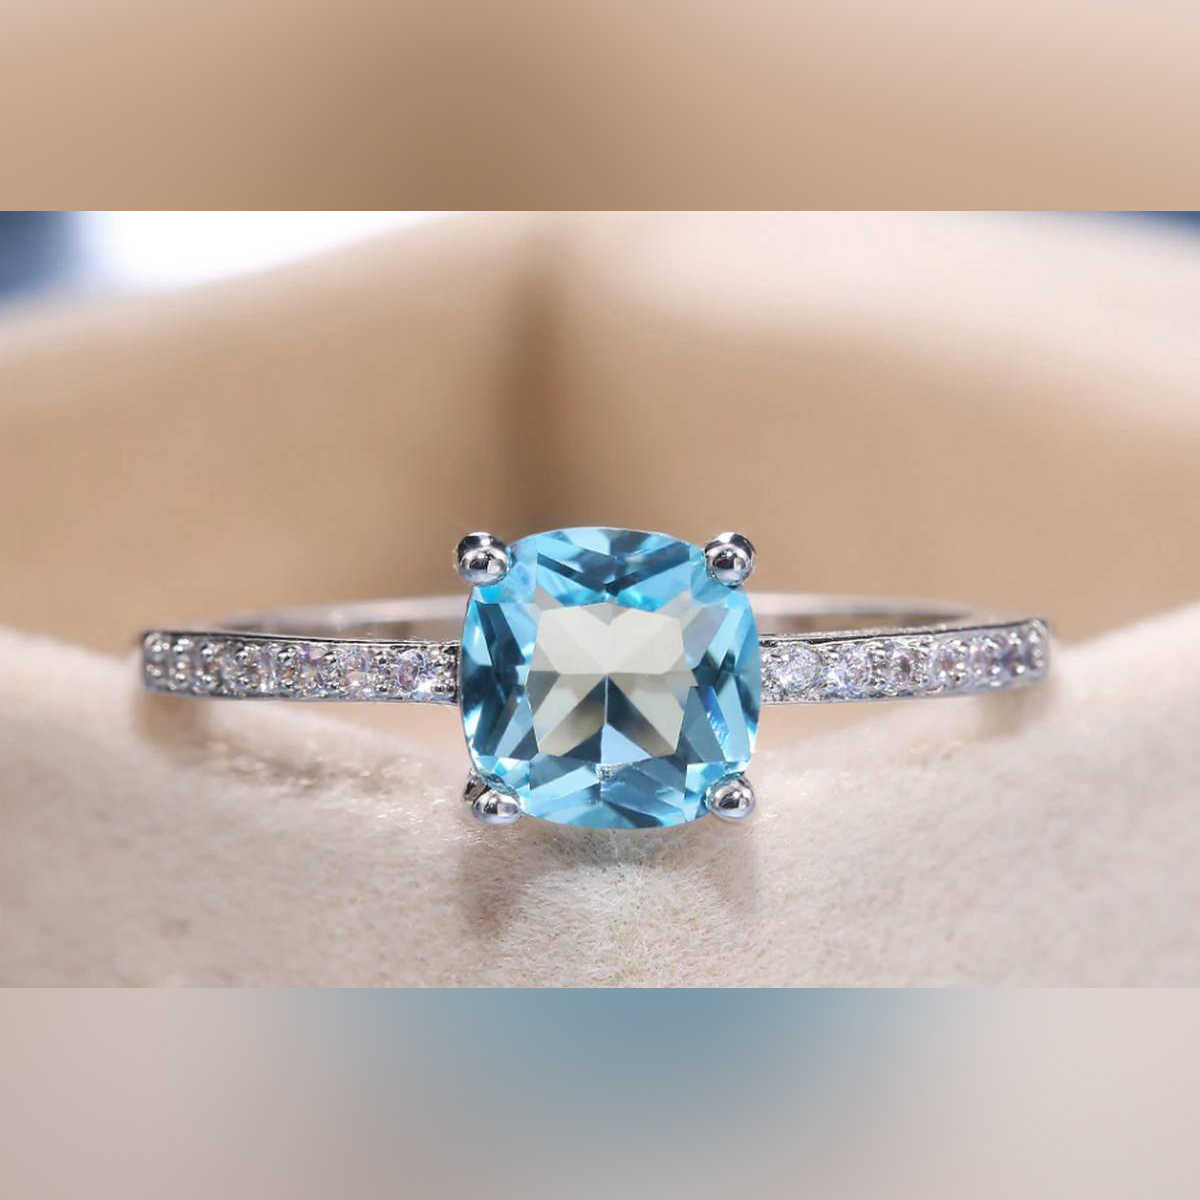 White Gold Plated AAA CZ Cubic Zirconia Diamond Wedding & Engagement Zircon Ring for Girls